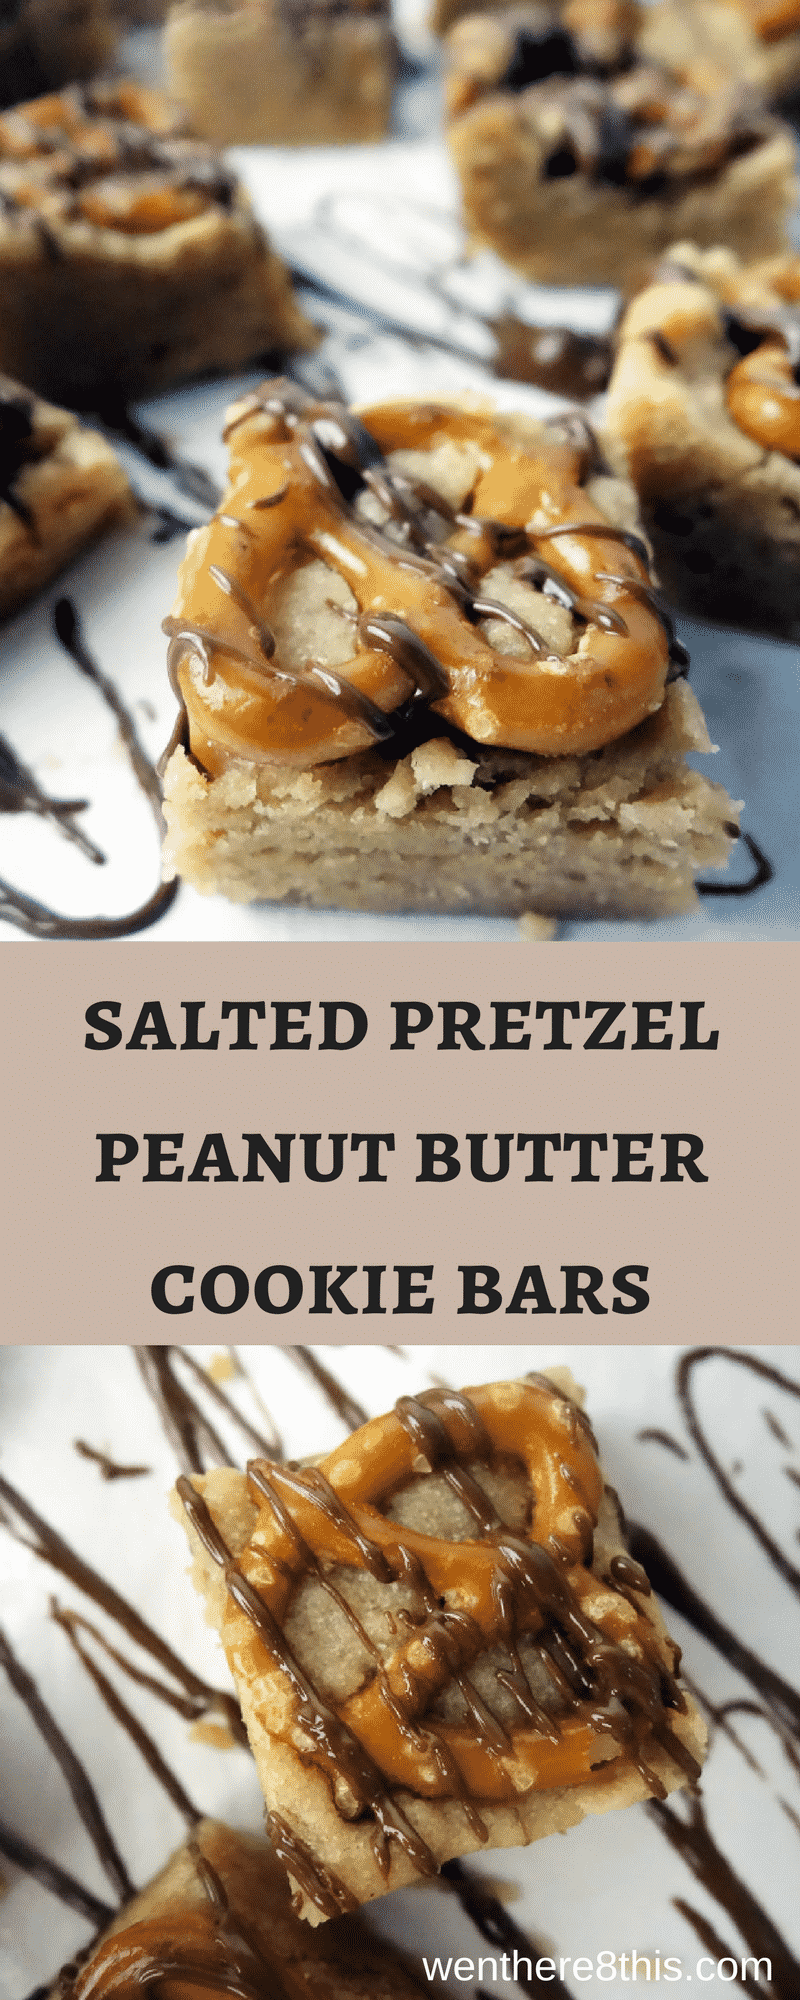 These Salted Pretzel Peanut Butter Cookie Bars take 20 minutes to make start to finish. This easy dessert is great for home or parties!Peanut butter cookie bar recipe | cookie bar recipes | Easy peanut butter cookies | Peanut butter cookie bars easy | peanut butter bars recipe | Salted pretzel peanut butter bars | salted pretzel dessert recipes | peanut butter pretzel bars easy